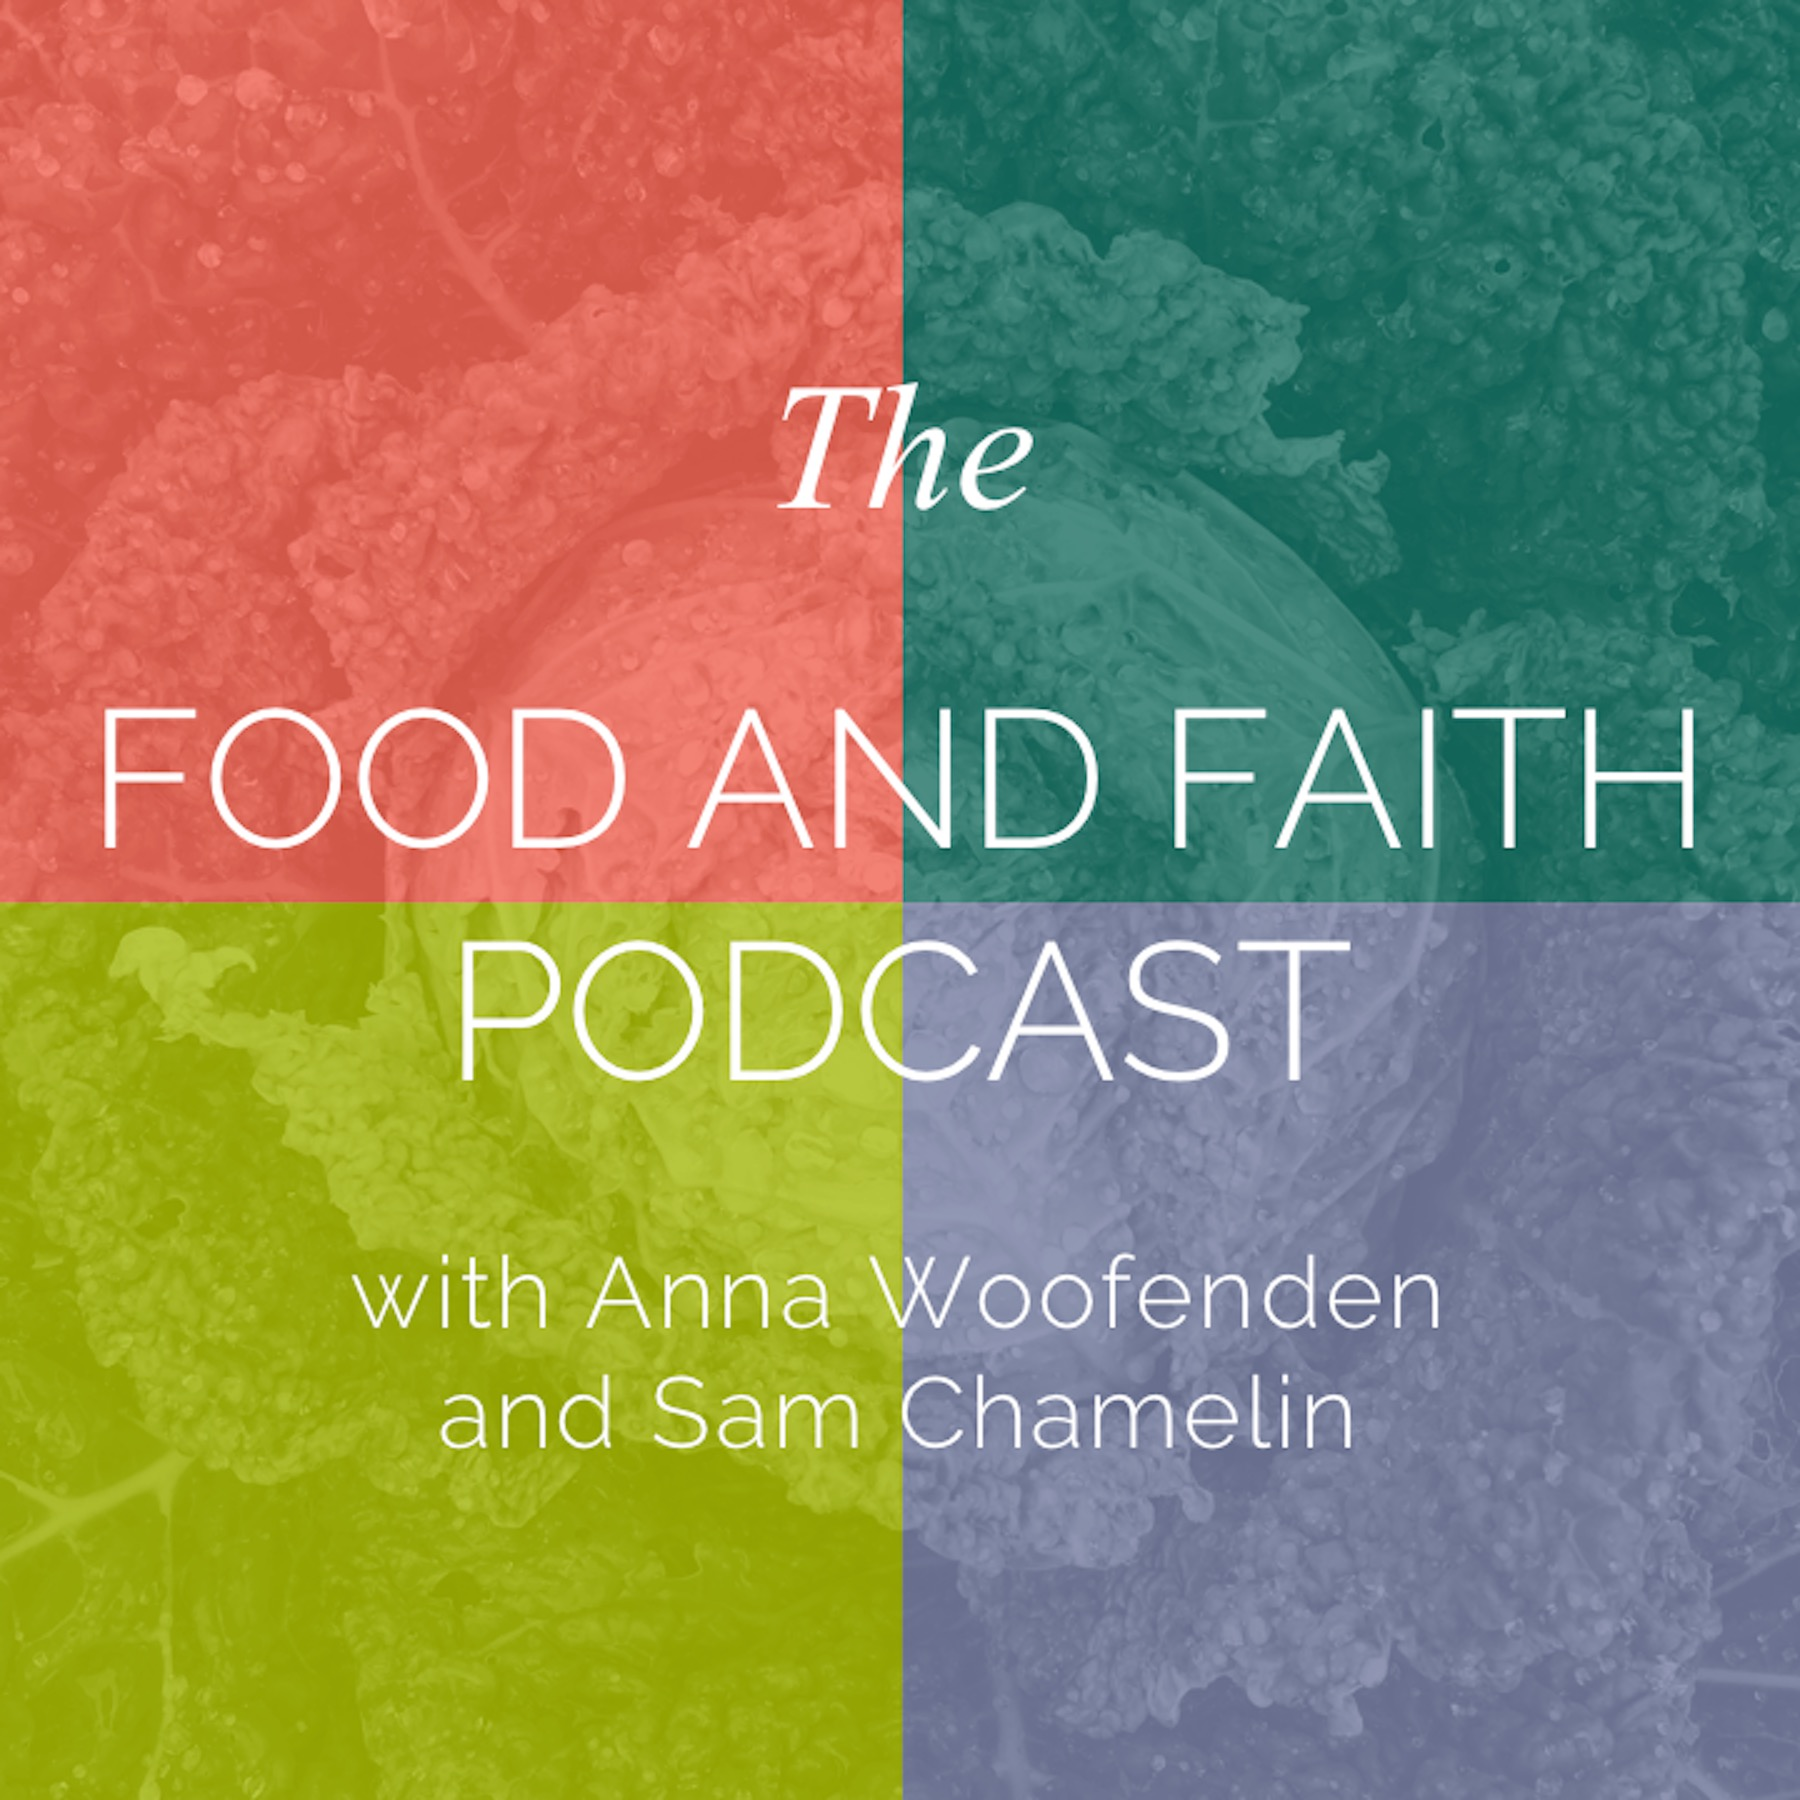 Food and Faith Podcast.jpeg